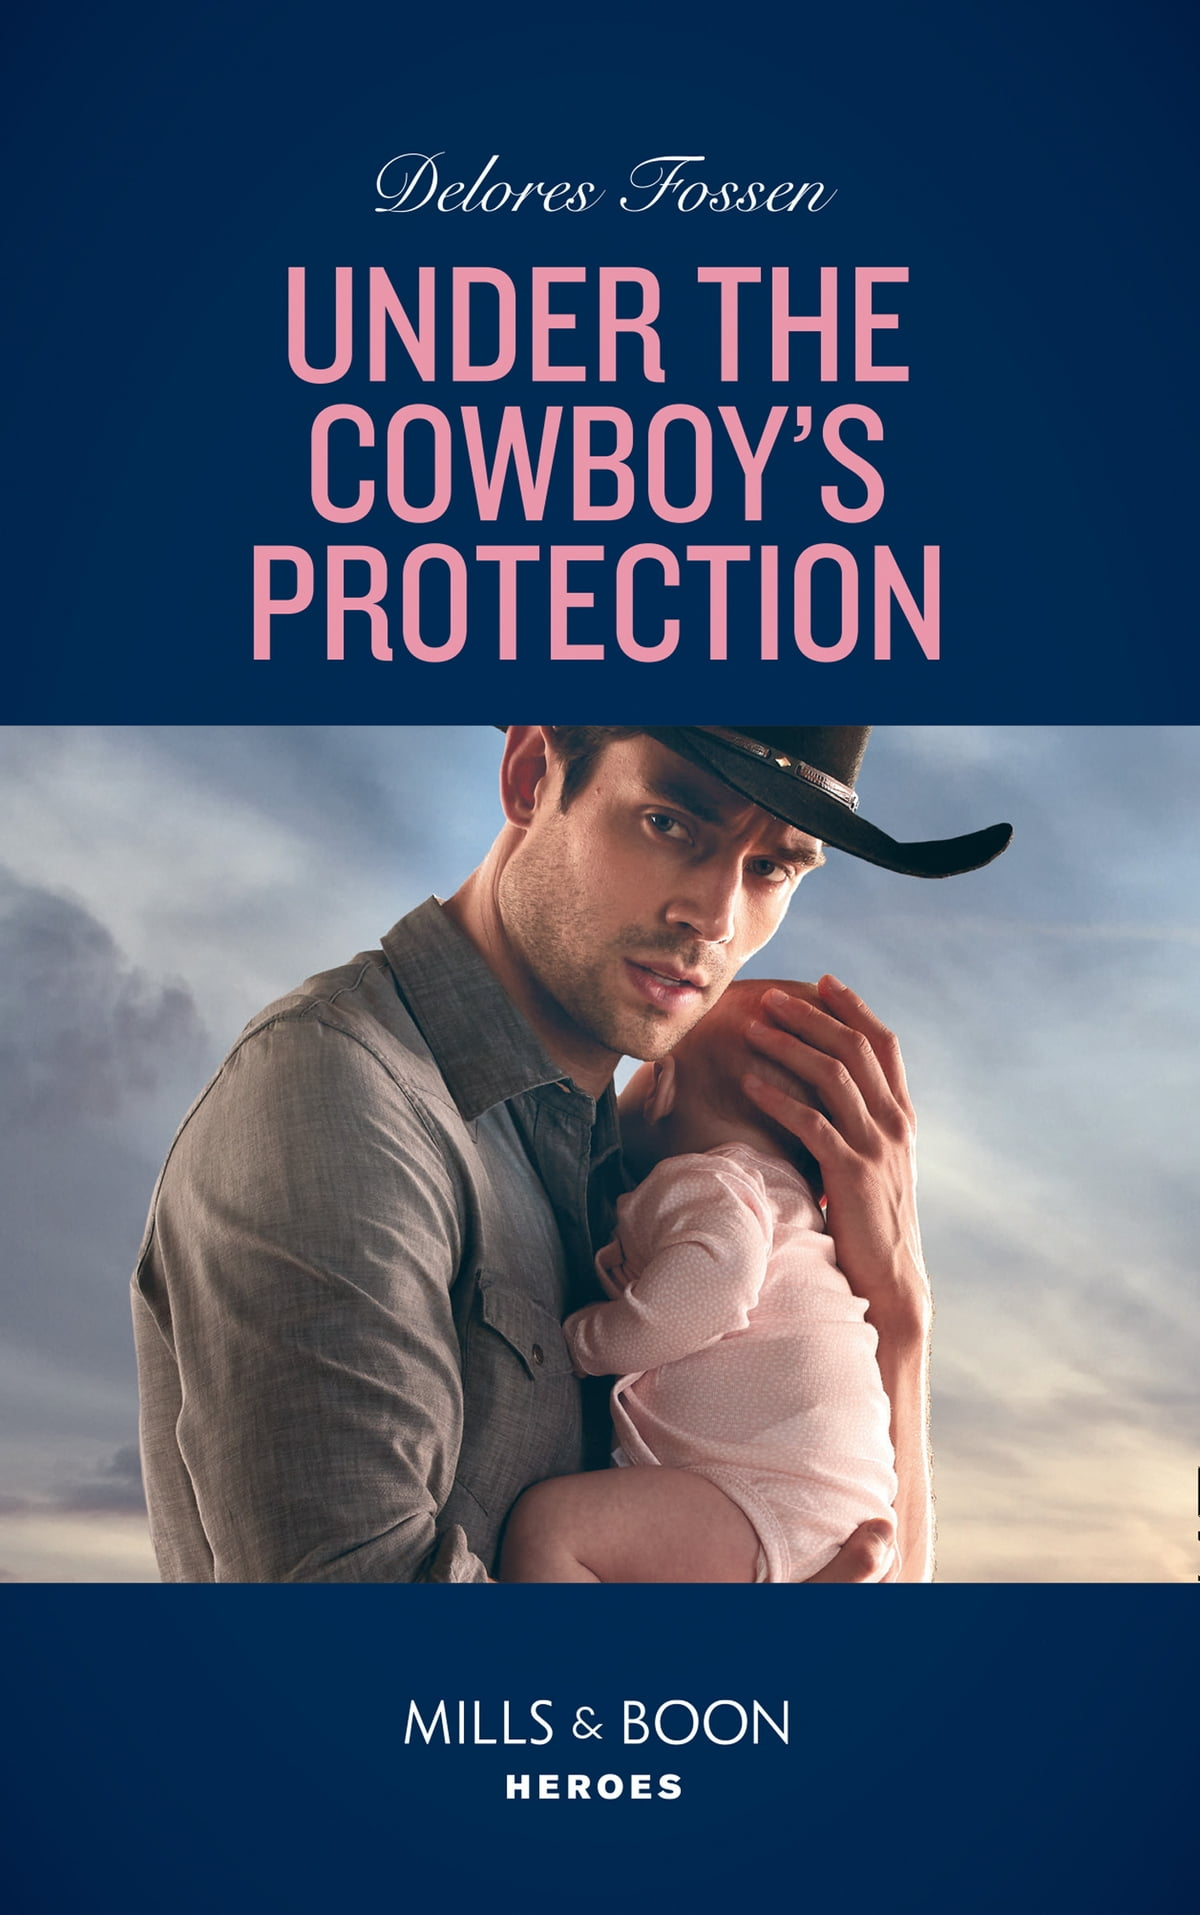 Under The Cowboy's Protection (Mills & Boon Heroes) (The Lawmen of McCall  Canyon, Book 4) eBook by Delores Fossen - 9781474093576 | Rakuten Kobo